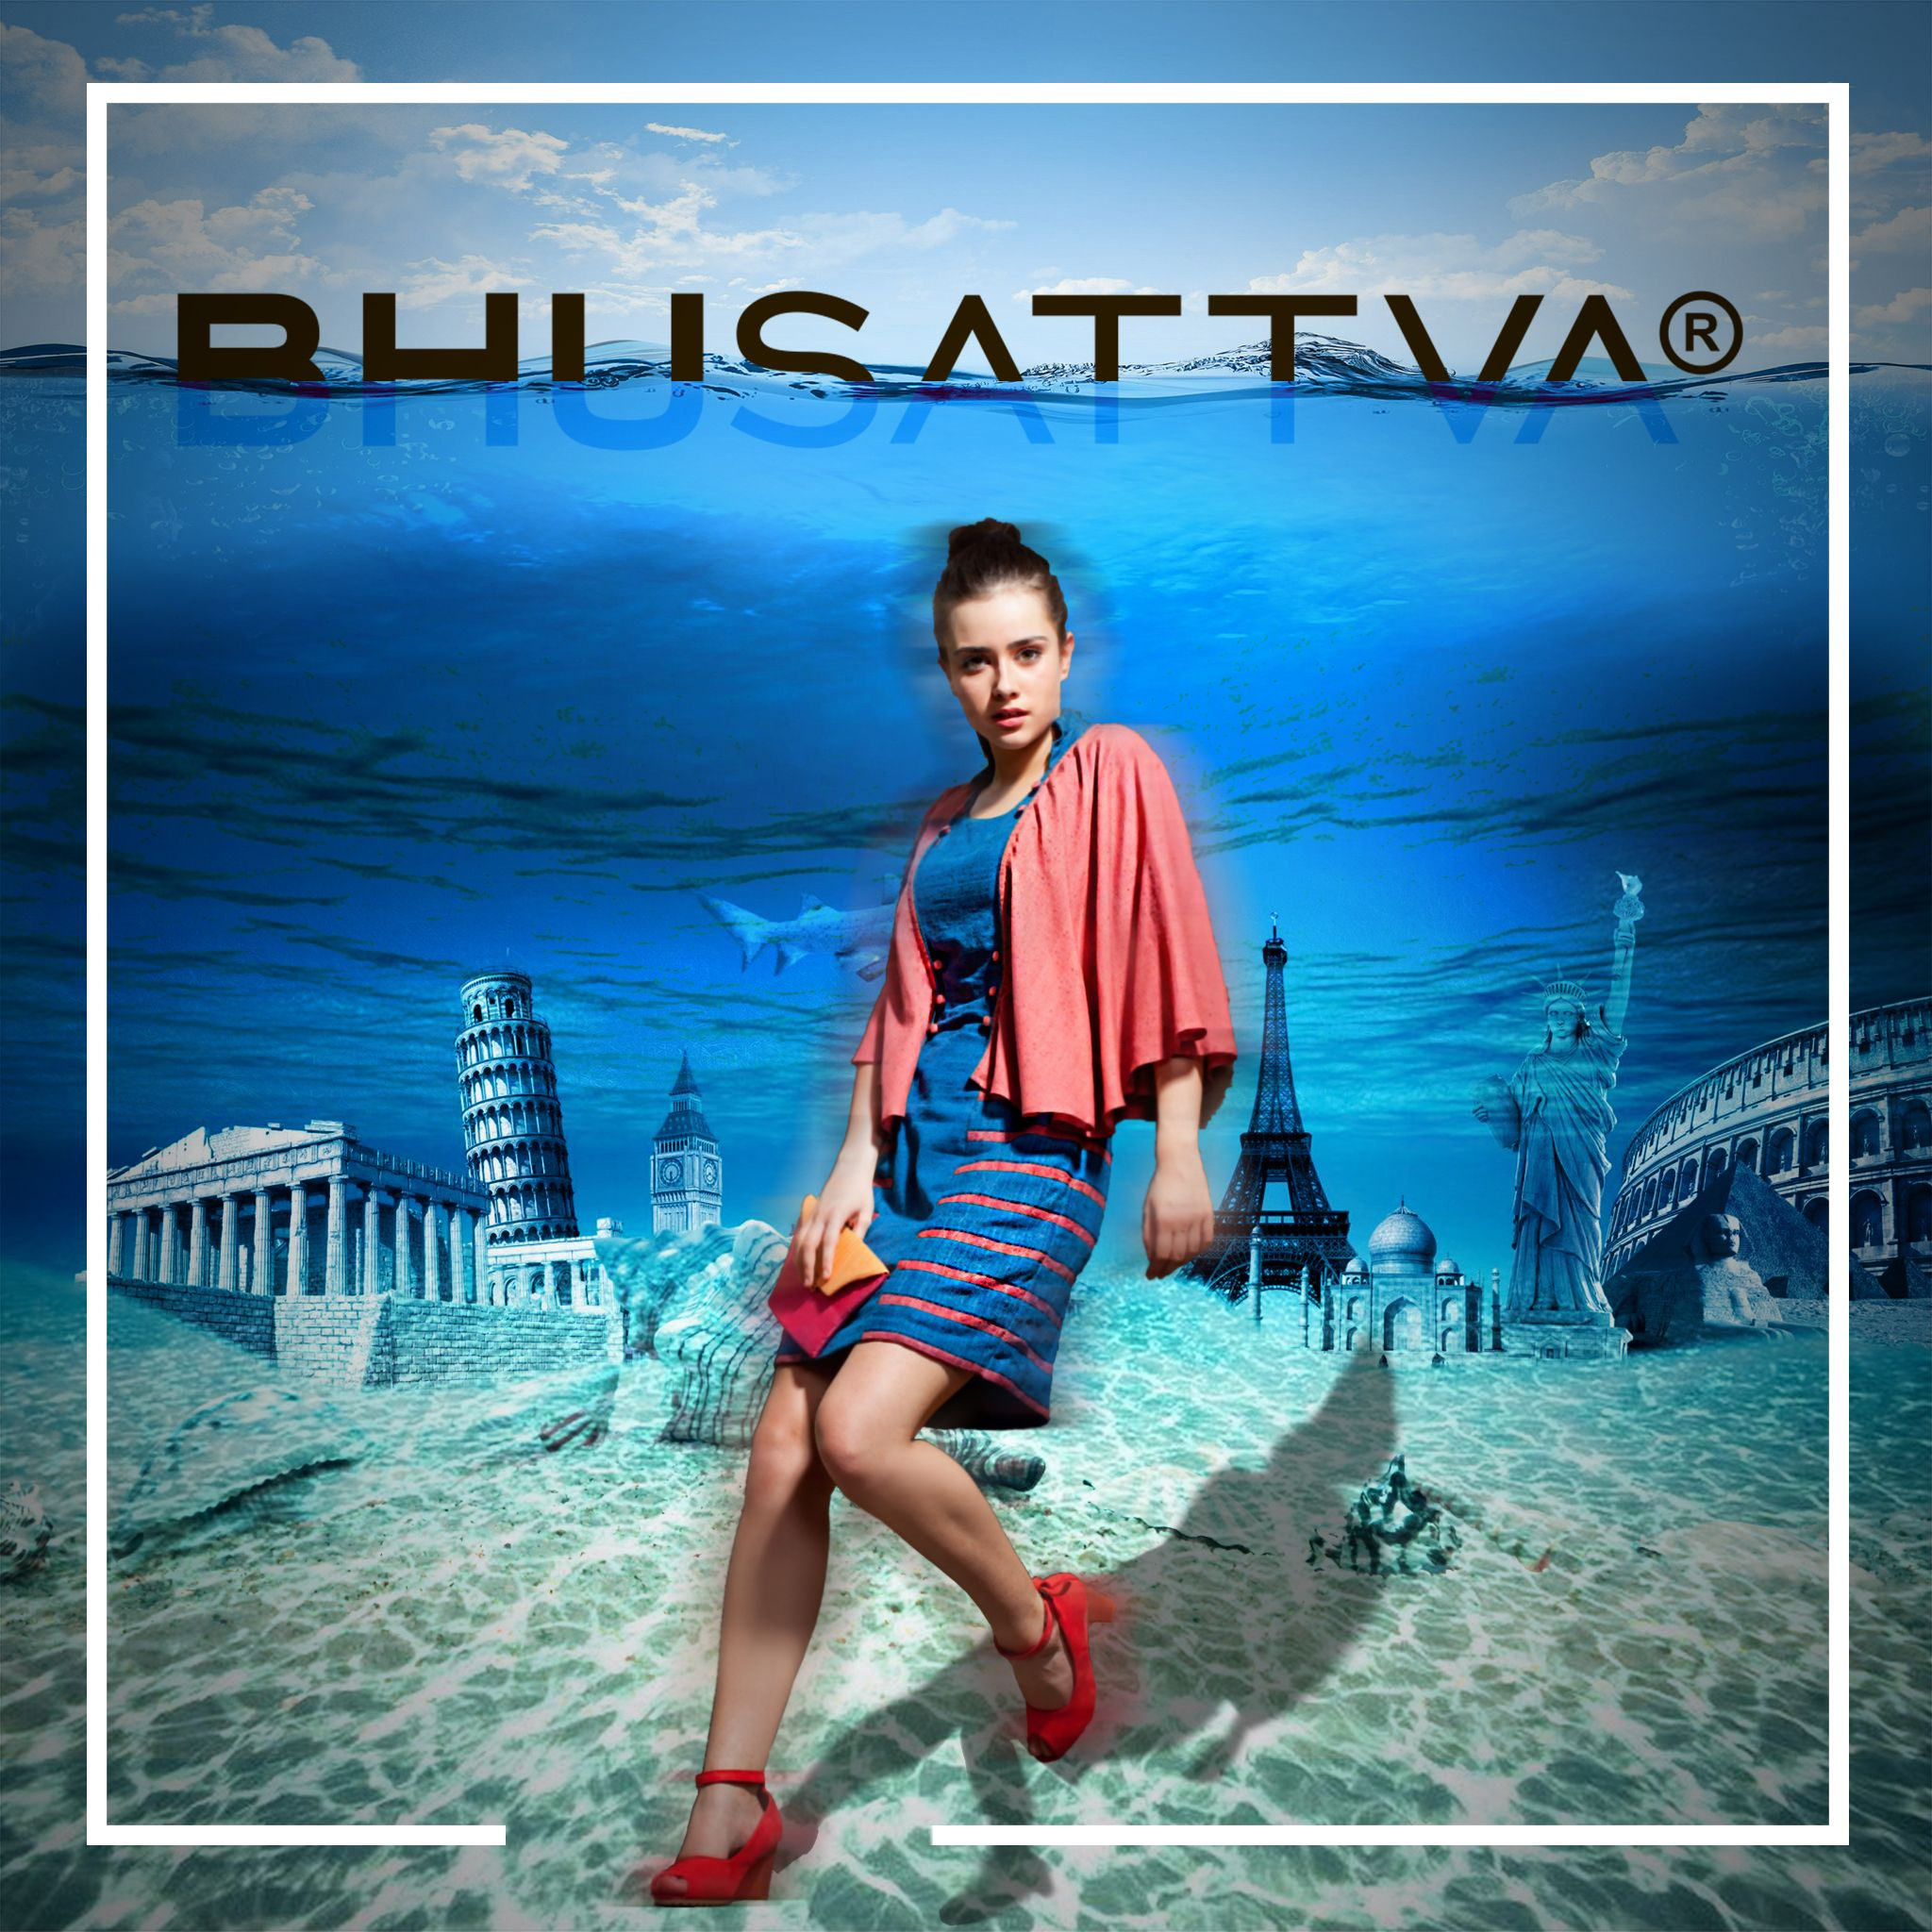 Fashion is what you buy, Style is what you do with it!  We at BhuSattva believe in leaving an EcoPrint on our way to Sustainable Development.  #Bhusattva #Organic #Pret #Couture #ResurgenceCollection #ModernWear #Essentials #HandEmbroidered #SkinFriendly #BreatheEasy #ReflectOrganic #RevealYourself #iWearBhusattva #BelieveWhatYouWear #TrustNature #MysticalNature #CloseToNature #OrganicIdeology #OrganicCollection #NaturalDyes #EcoFashion #OrganicFashion #SustainableFashion